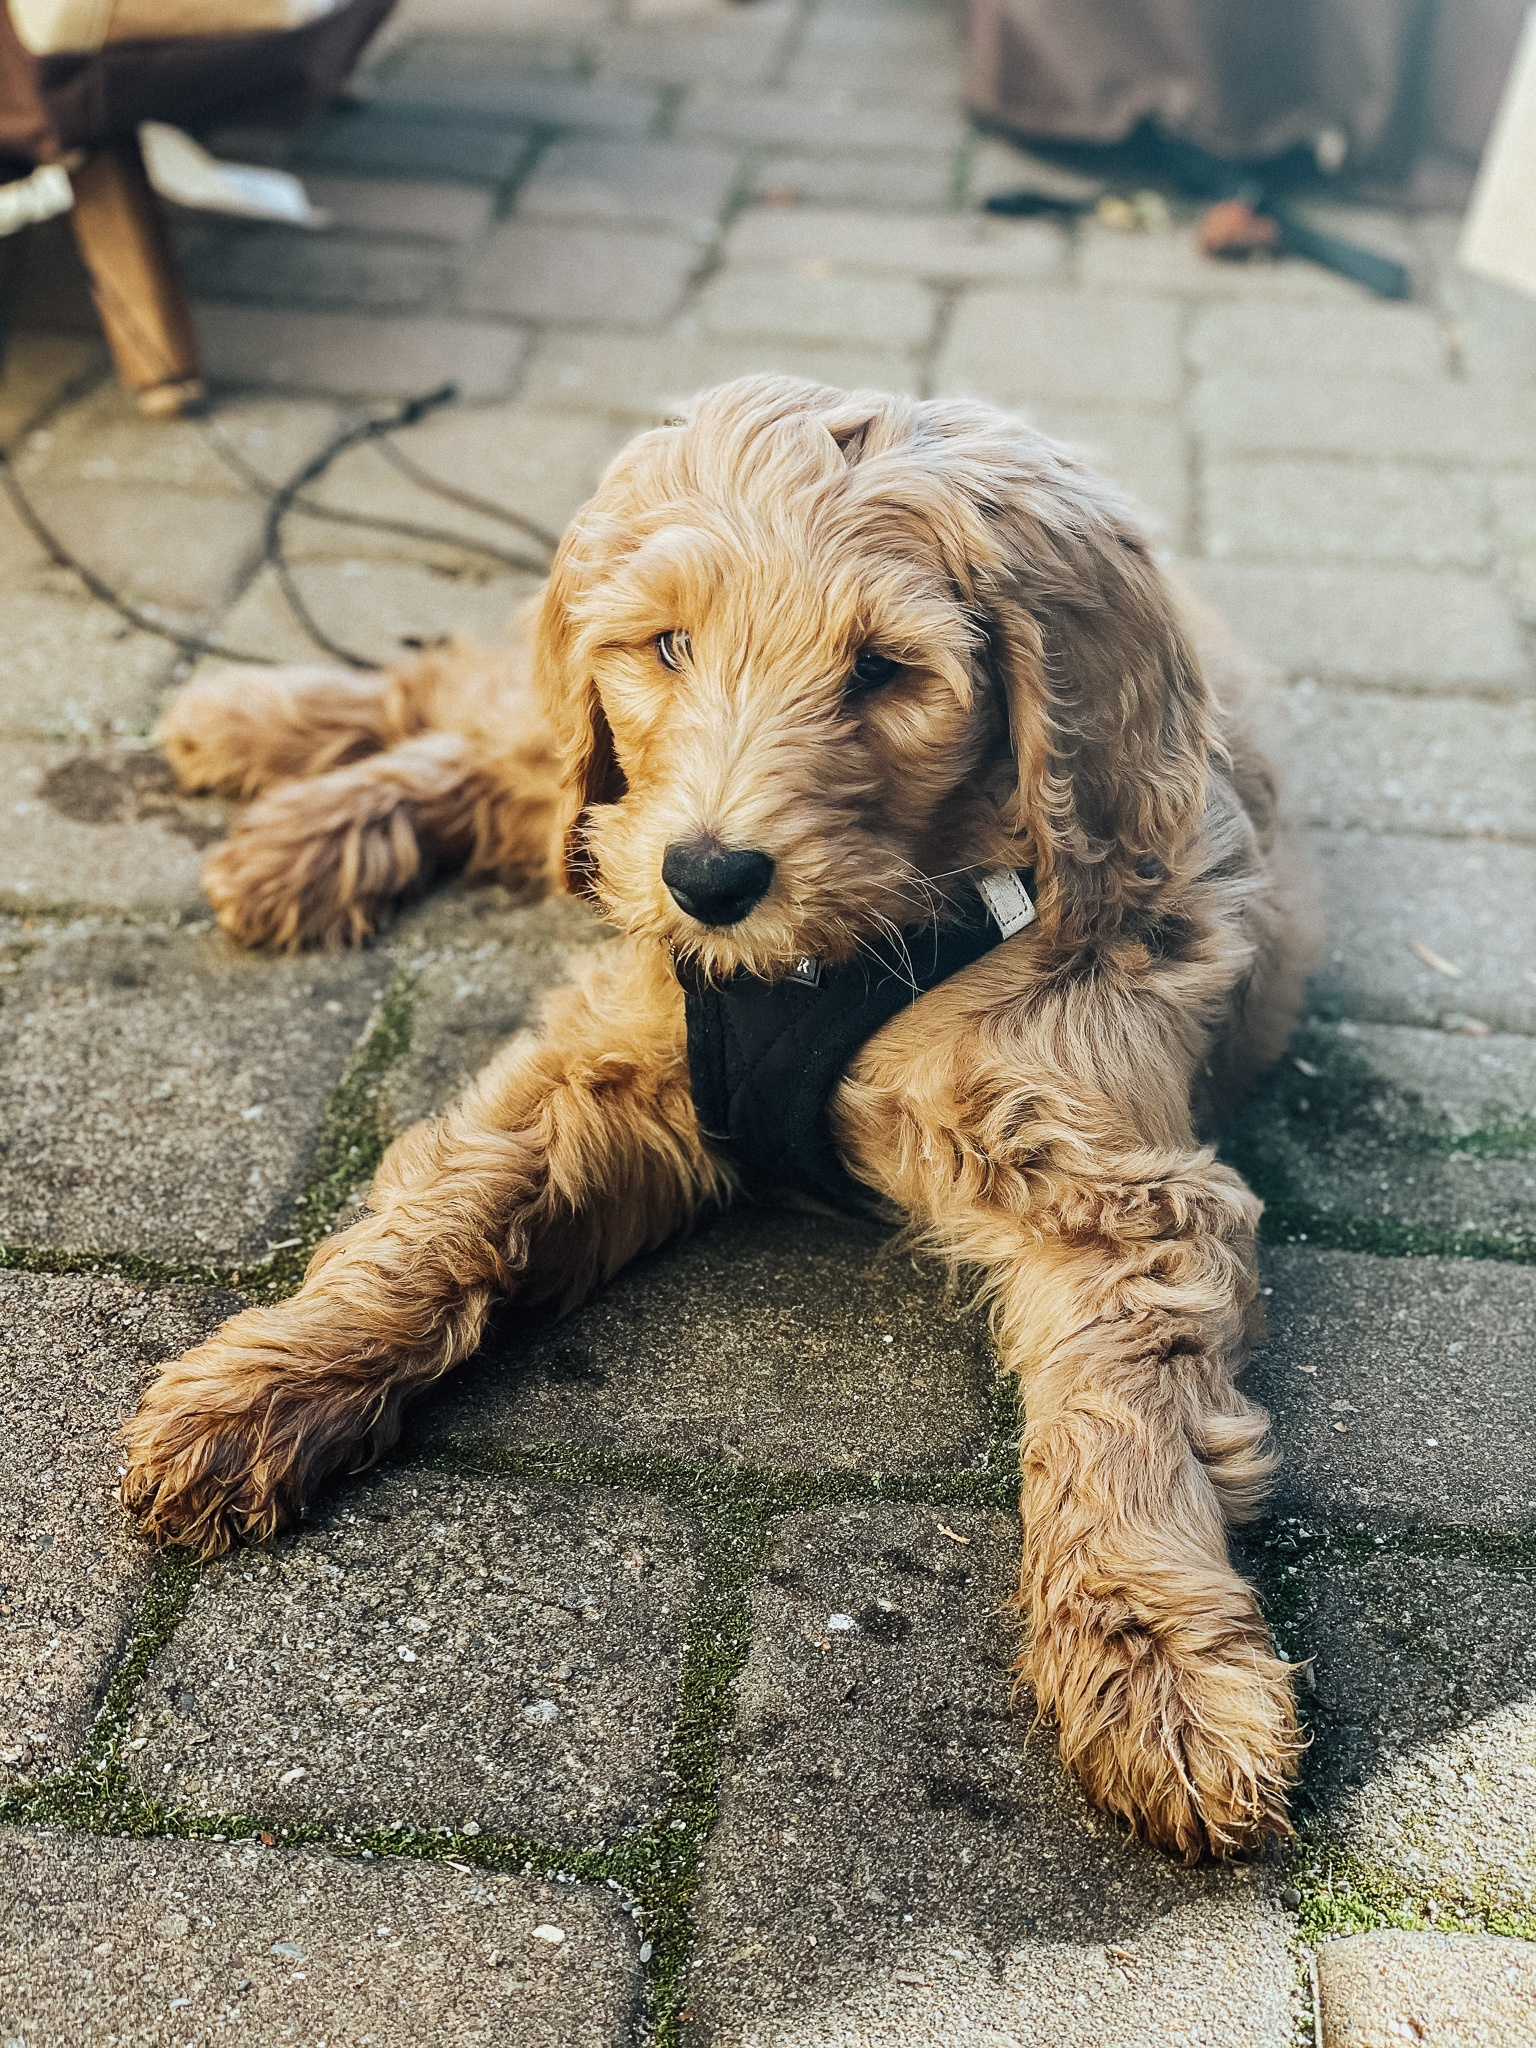 Got the puppy blues? The good news is you aren't alone. Check out these tips and tricks for surviving puppy parenthood.